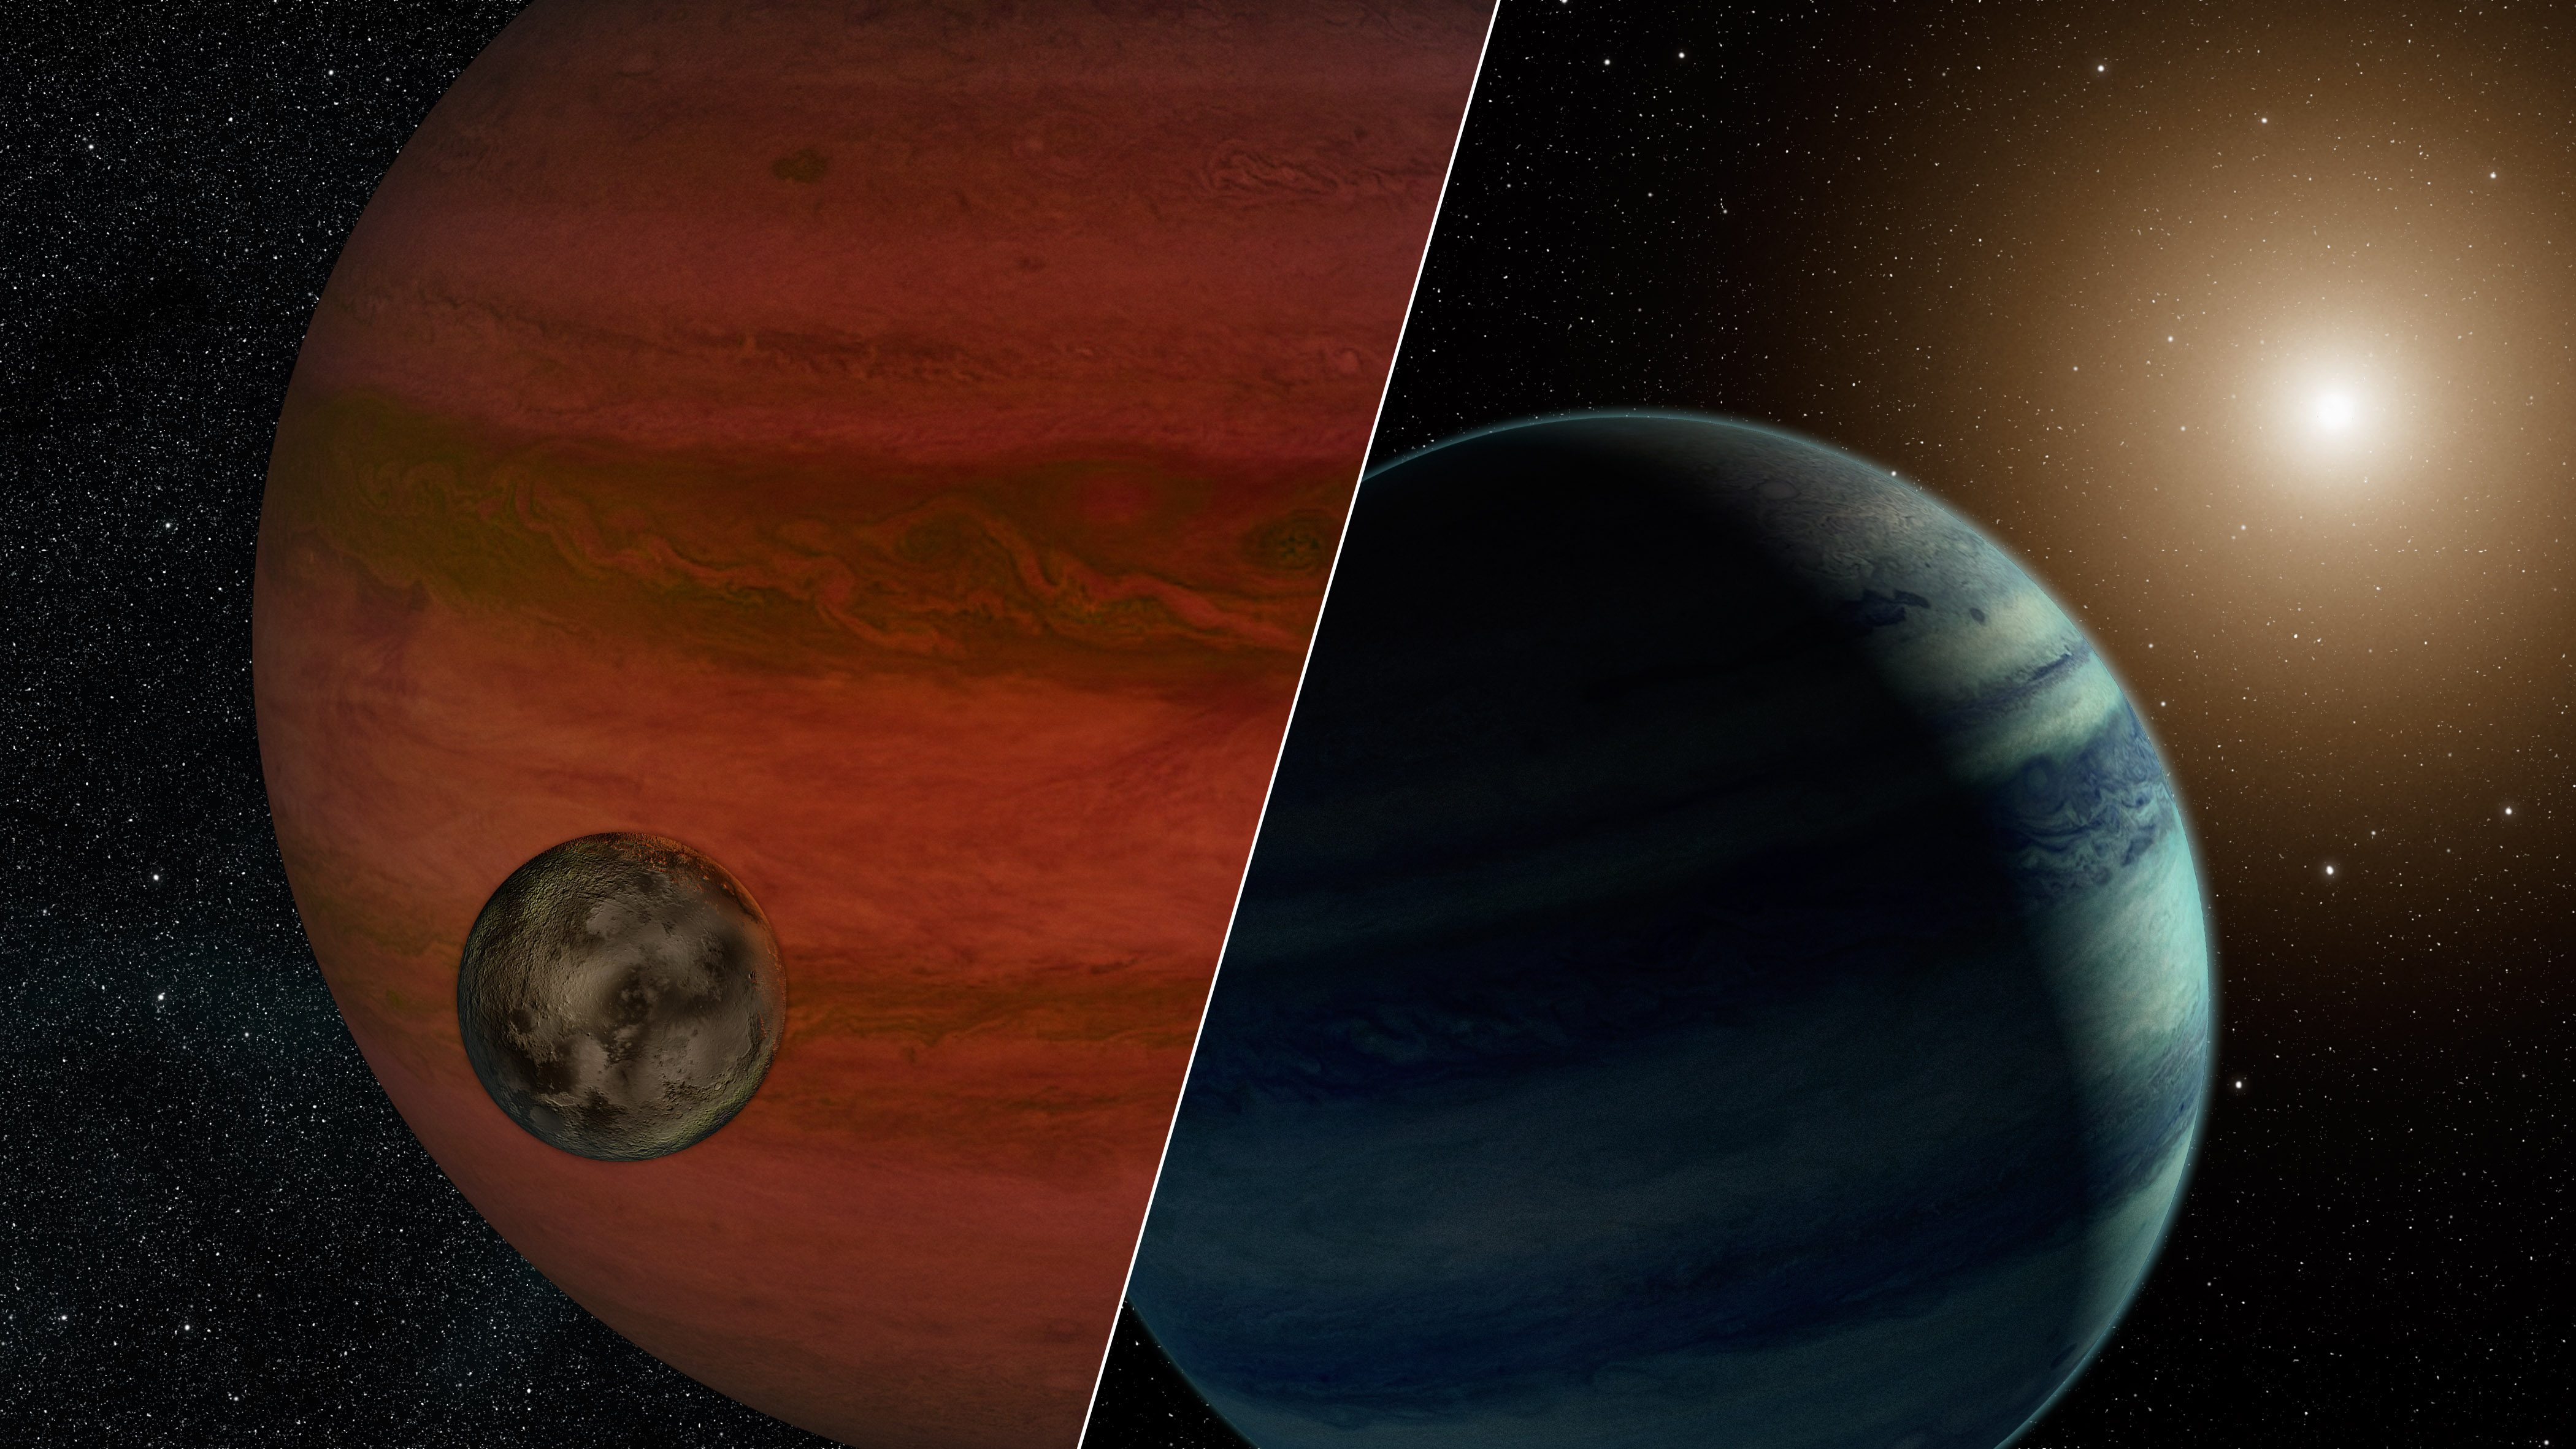 Gmail planets theme - Artist S Concept Of A Moon And A Planet Or A Planet And A Star